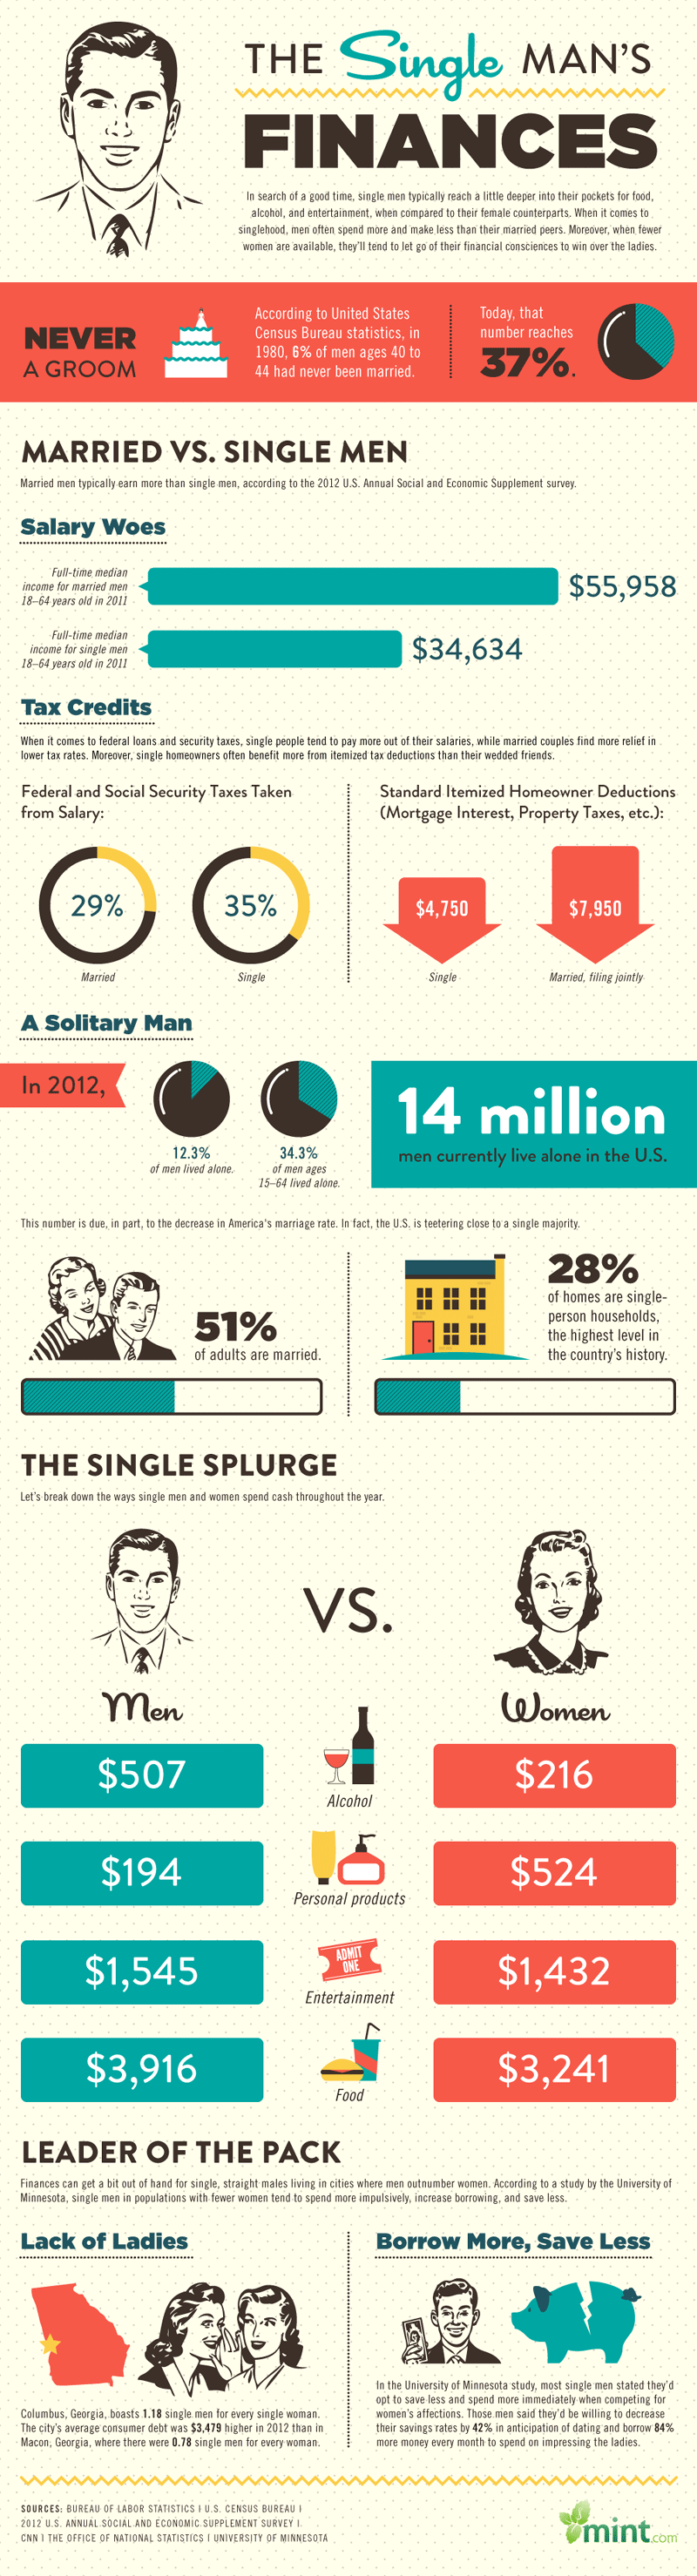 single mans finances infographic